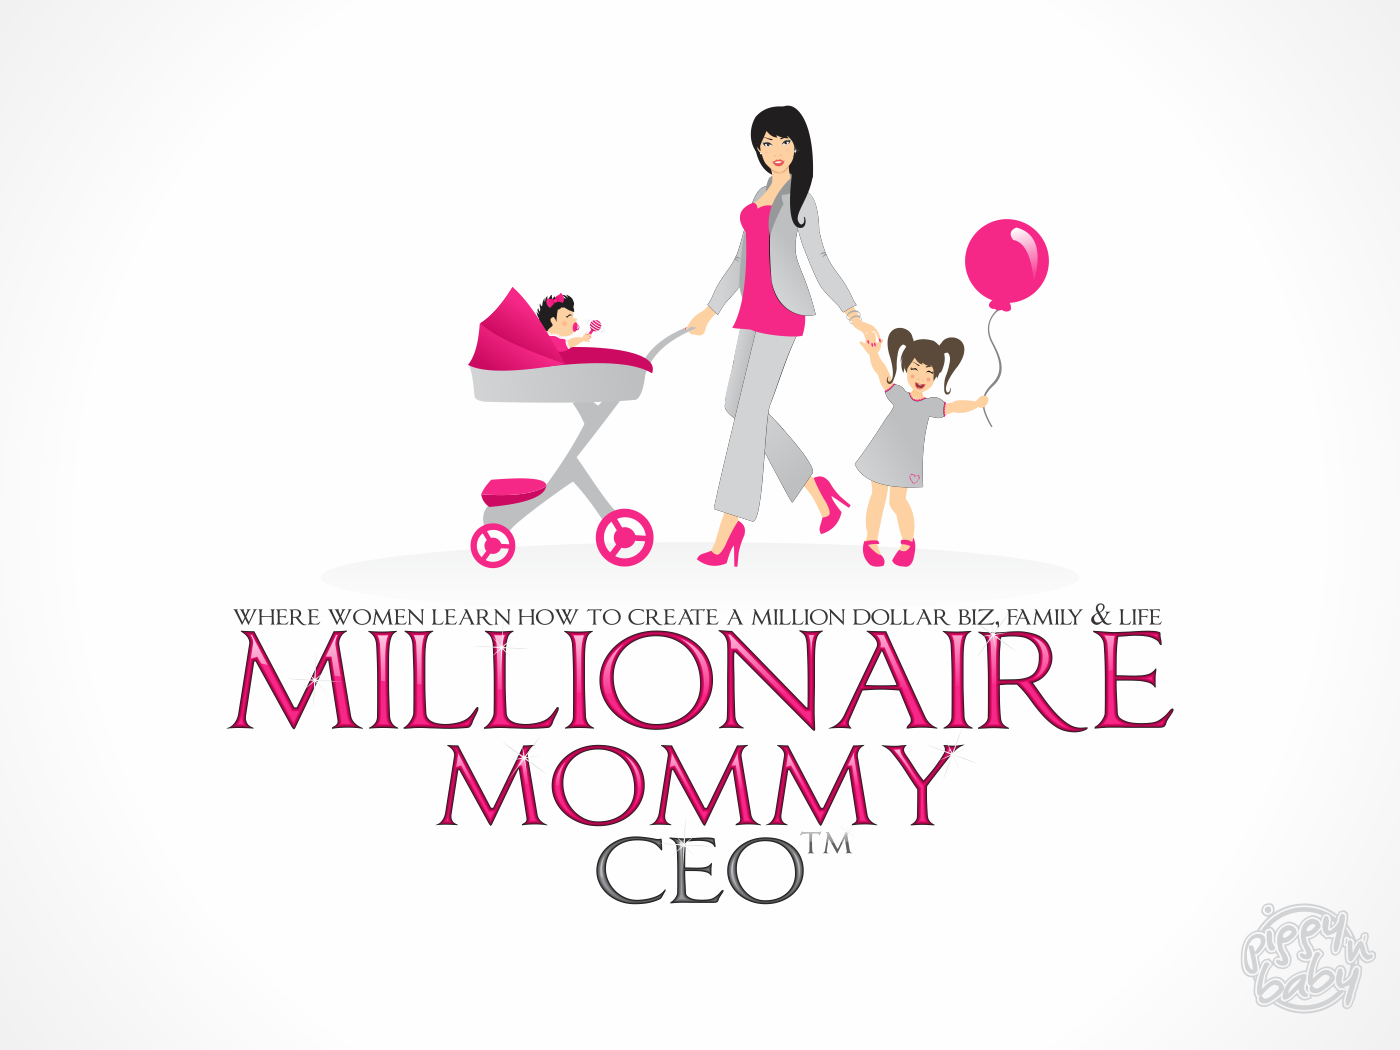 Millionaire Mommy CEO (TM) (the TM is just the trademark symbol) needs a new logo